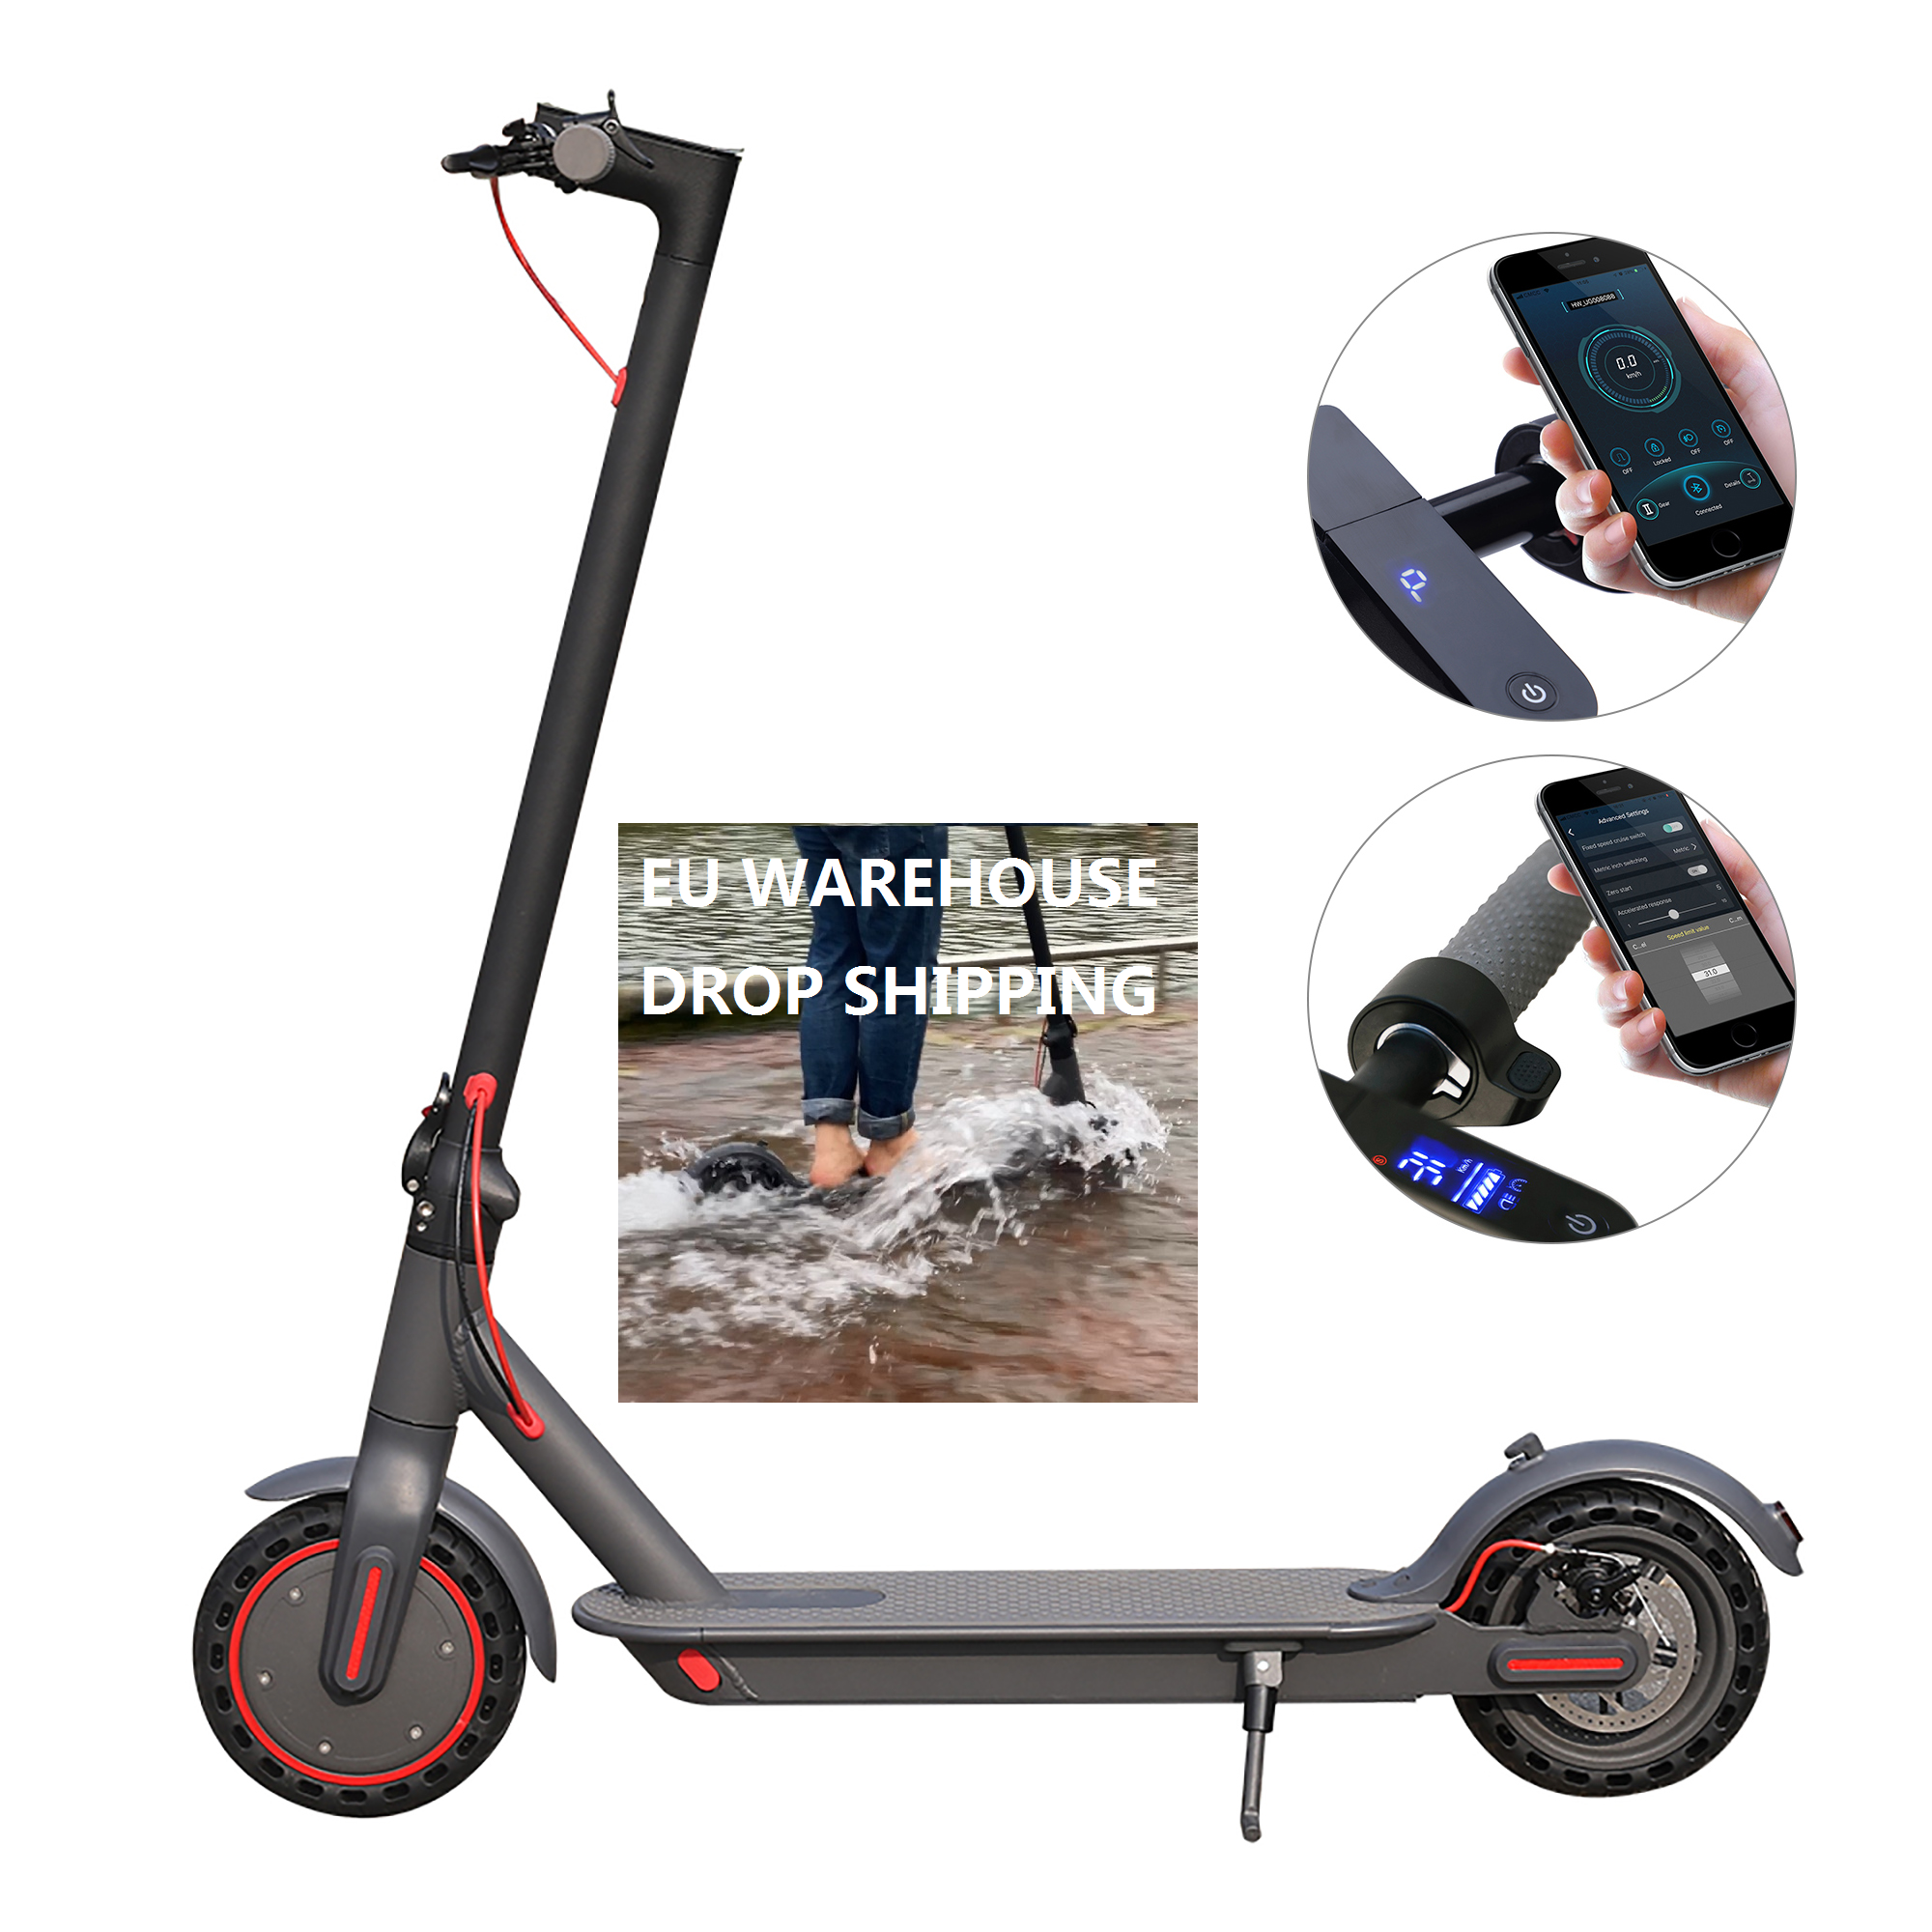 AOVOPRO Europe Poland Warehouse Drop Shipping 10.5Ah Battery 35KM Range M365Pro With Smart APP Foldable Adult <strong>Electric</strong> Scooter